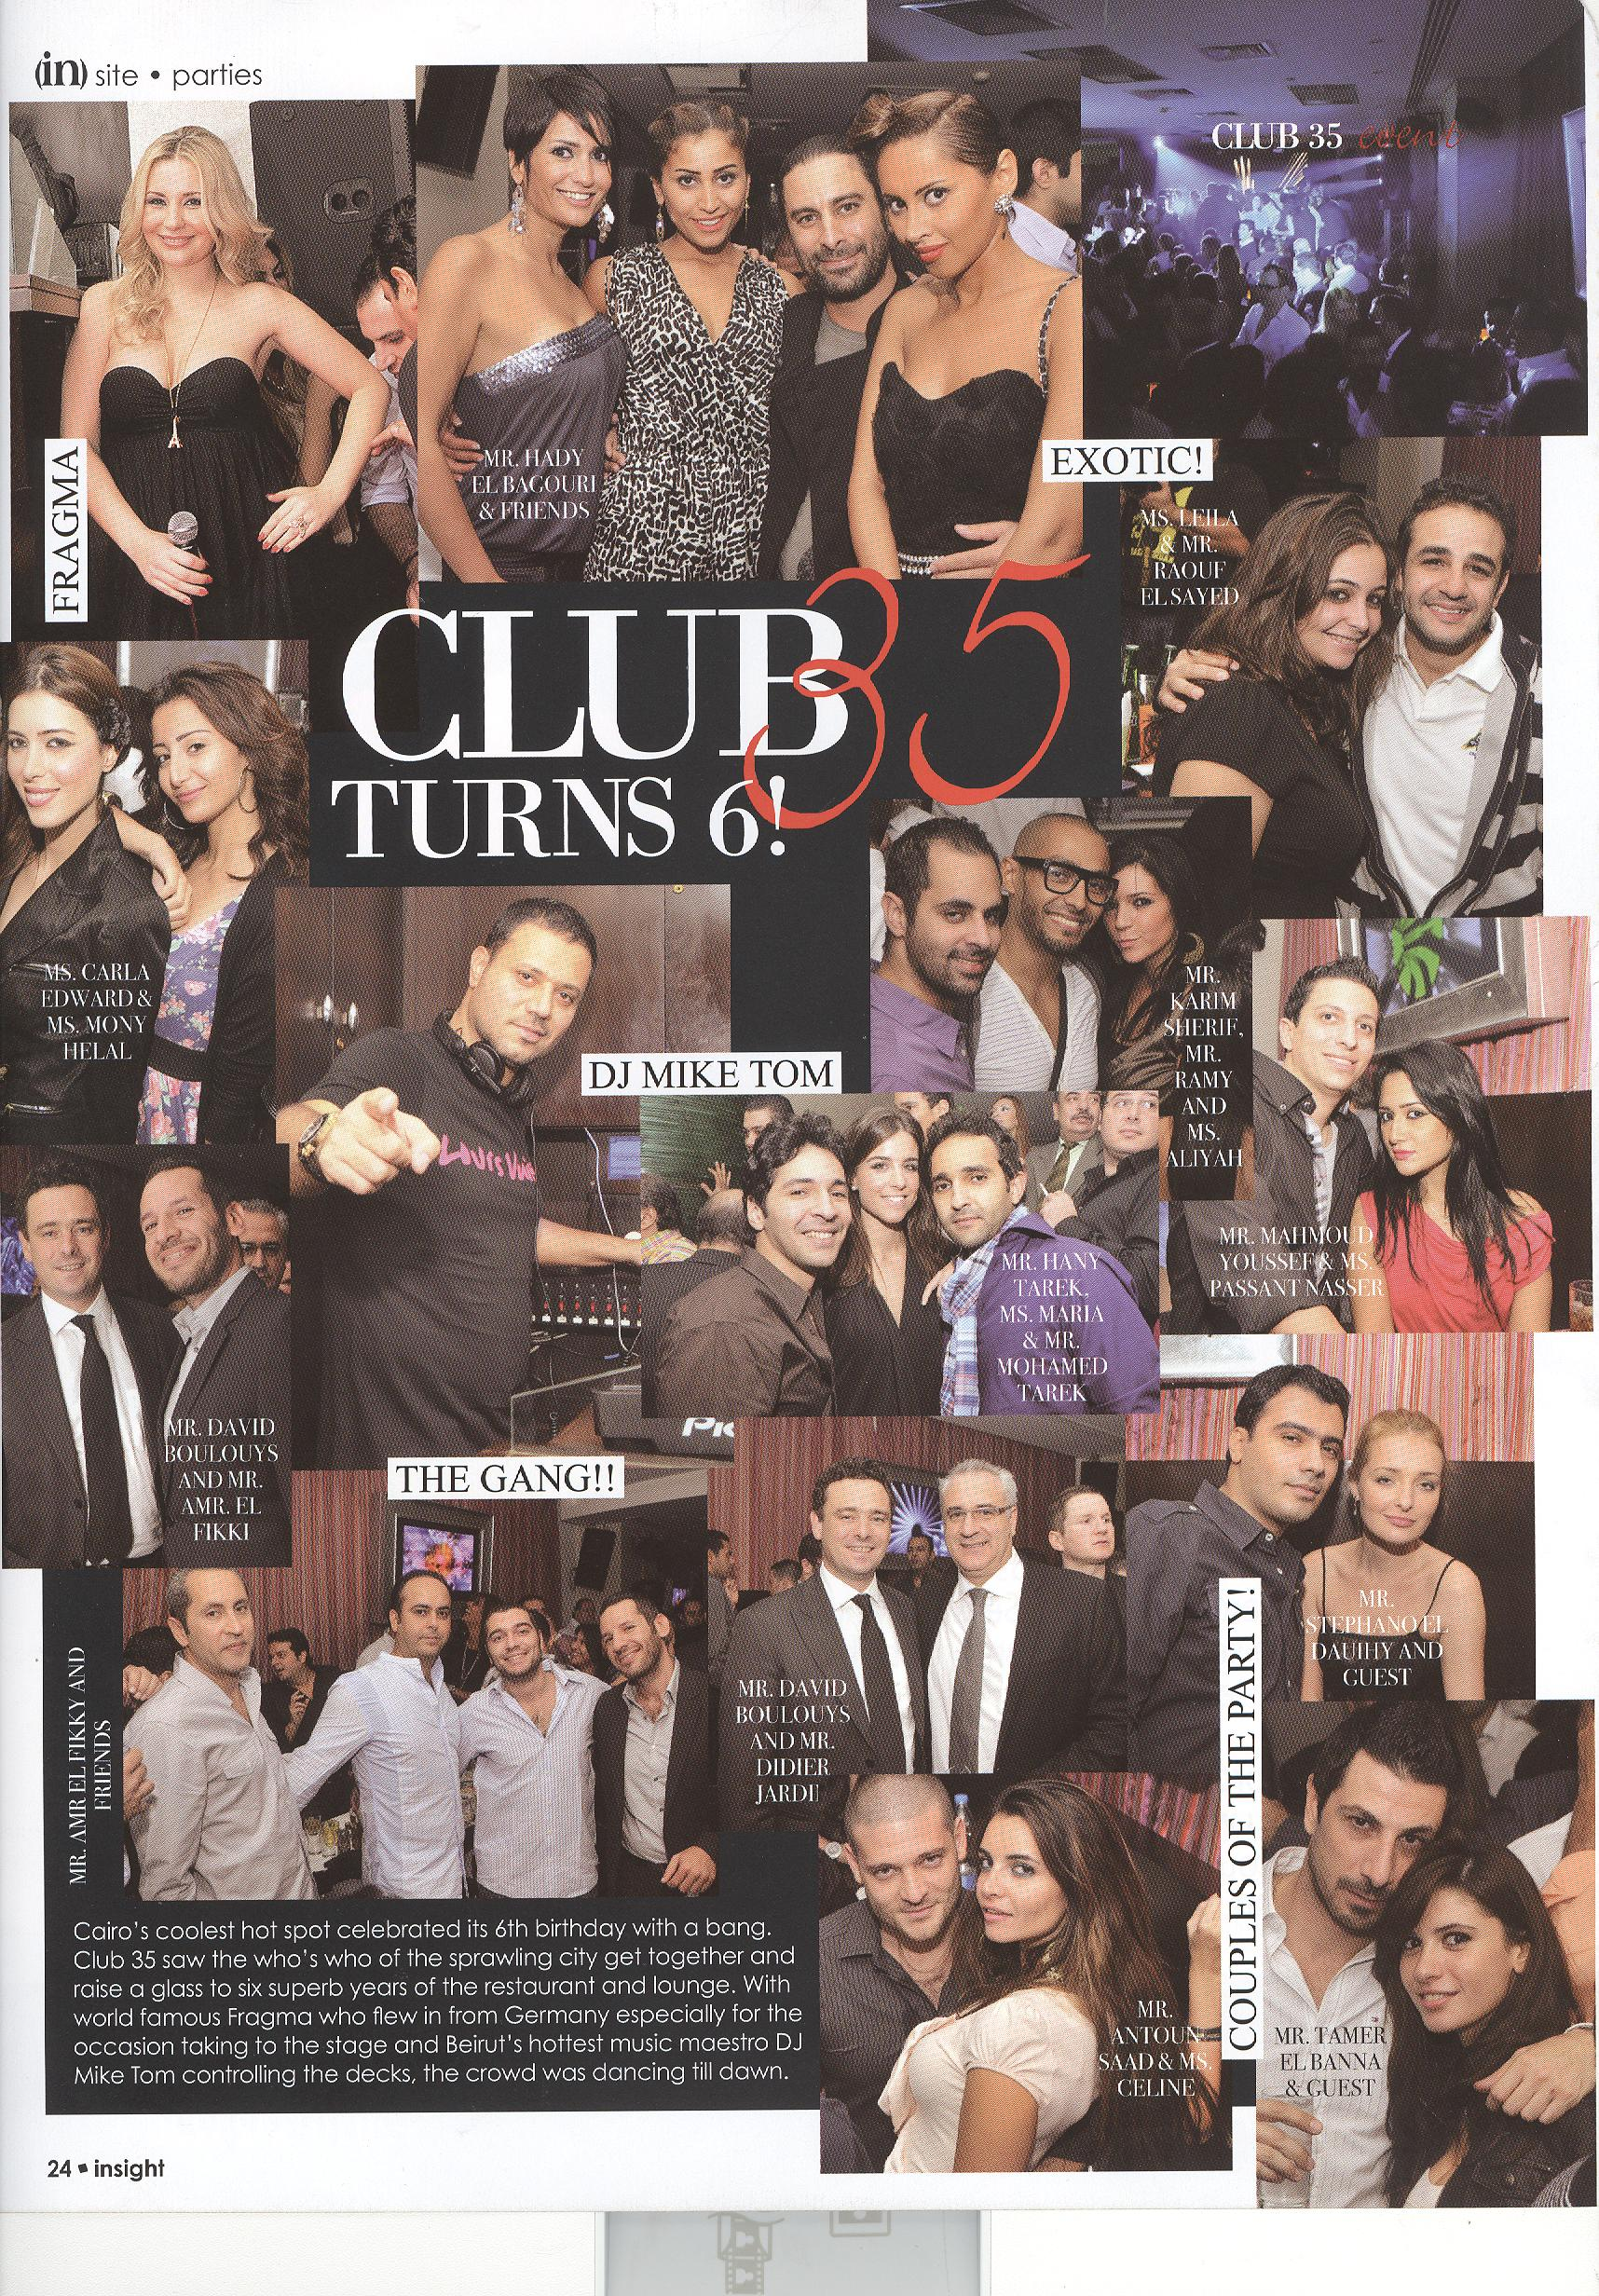 Club 35 anniversary in insight mag.